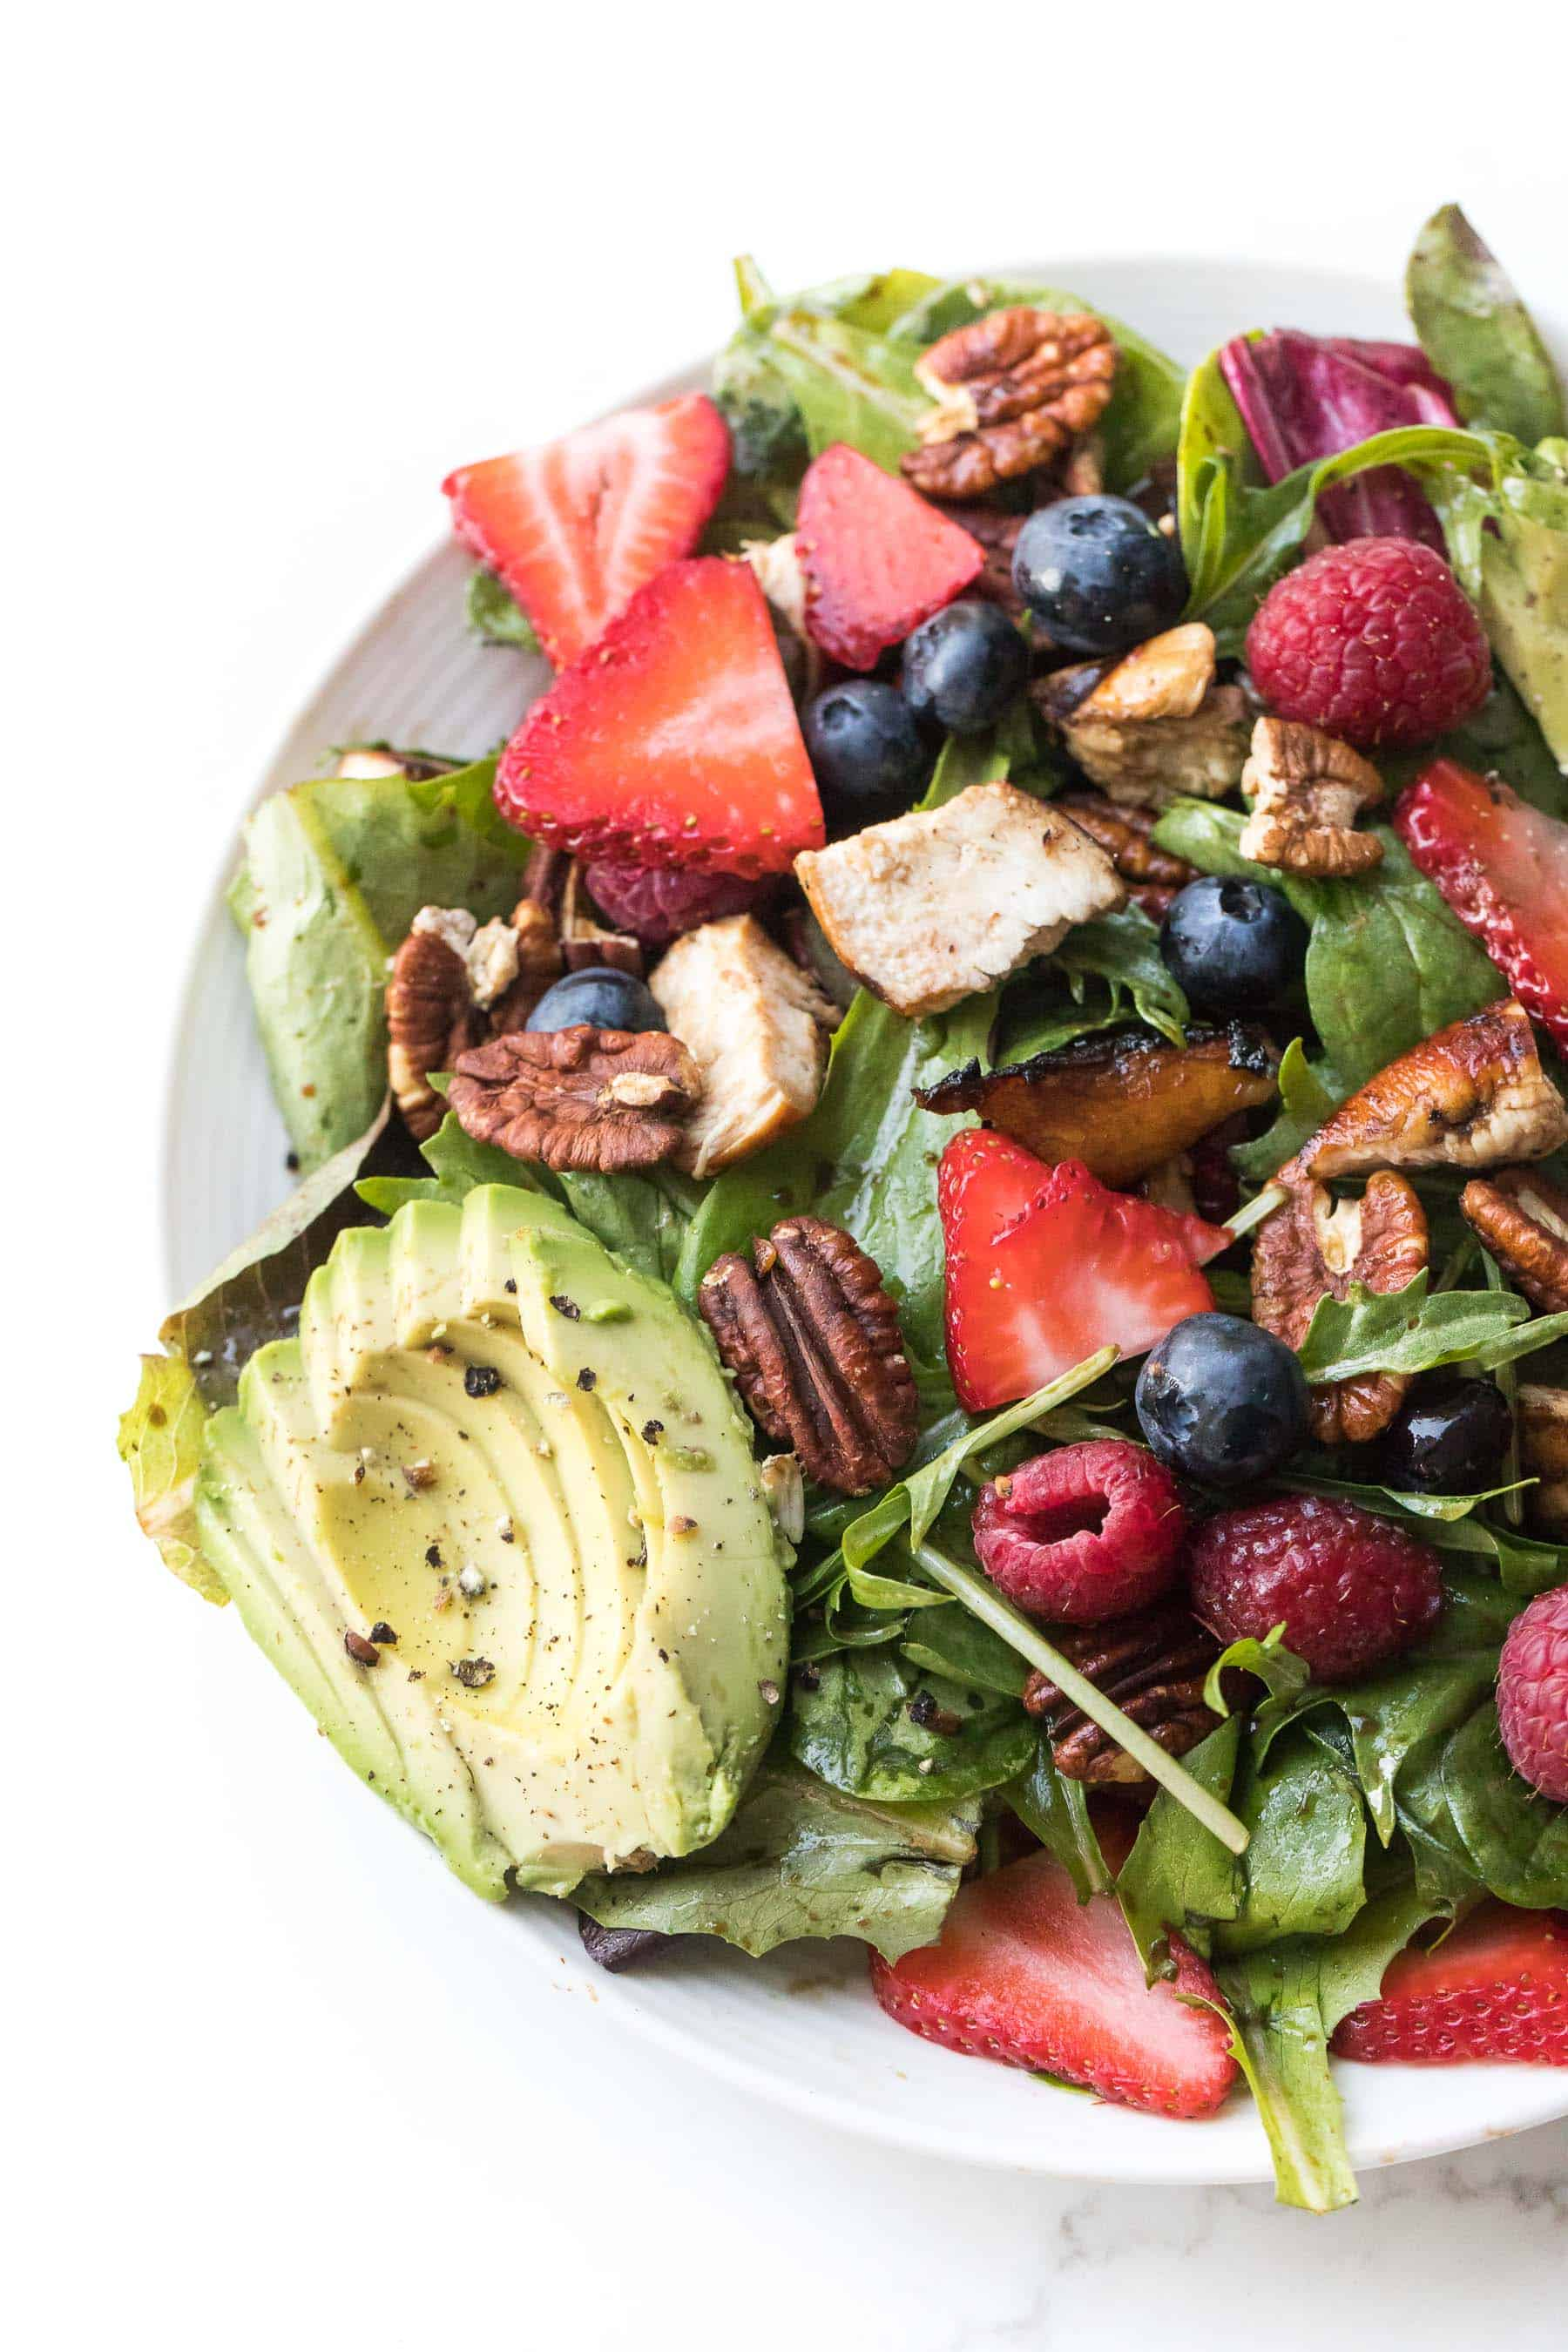 salad with strawberries, blueberries, raspberries, chicken, avocado + pecans on a white plate and background